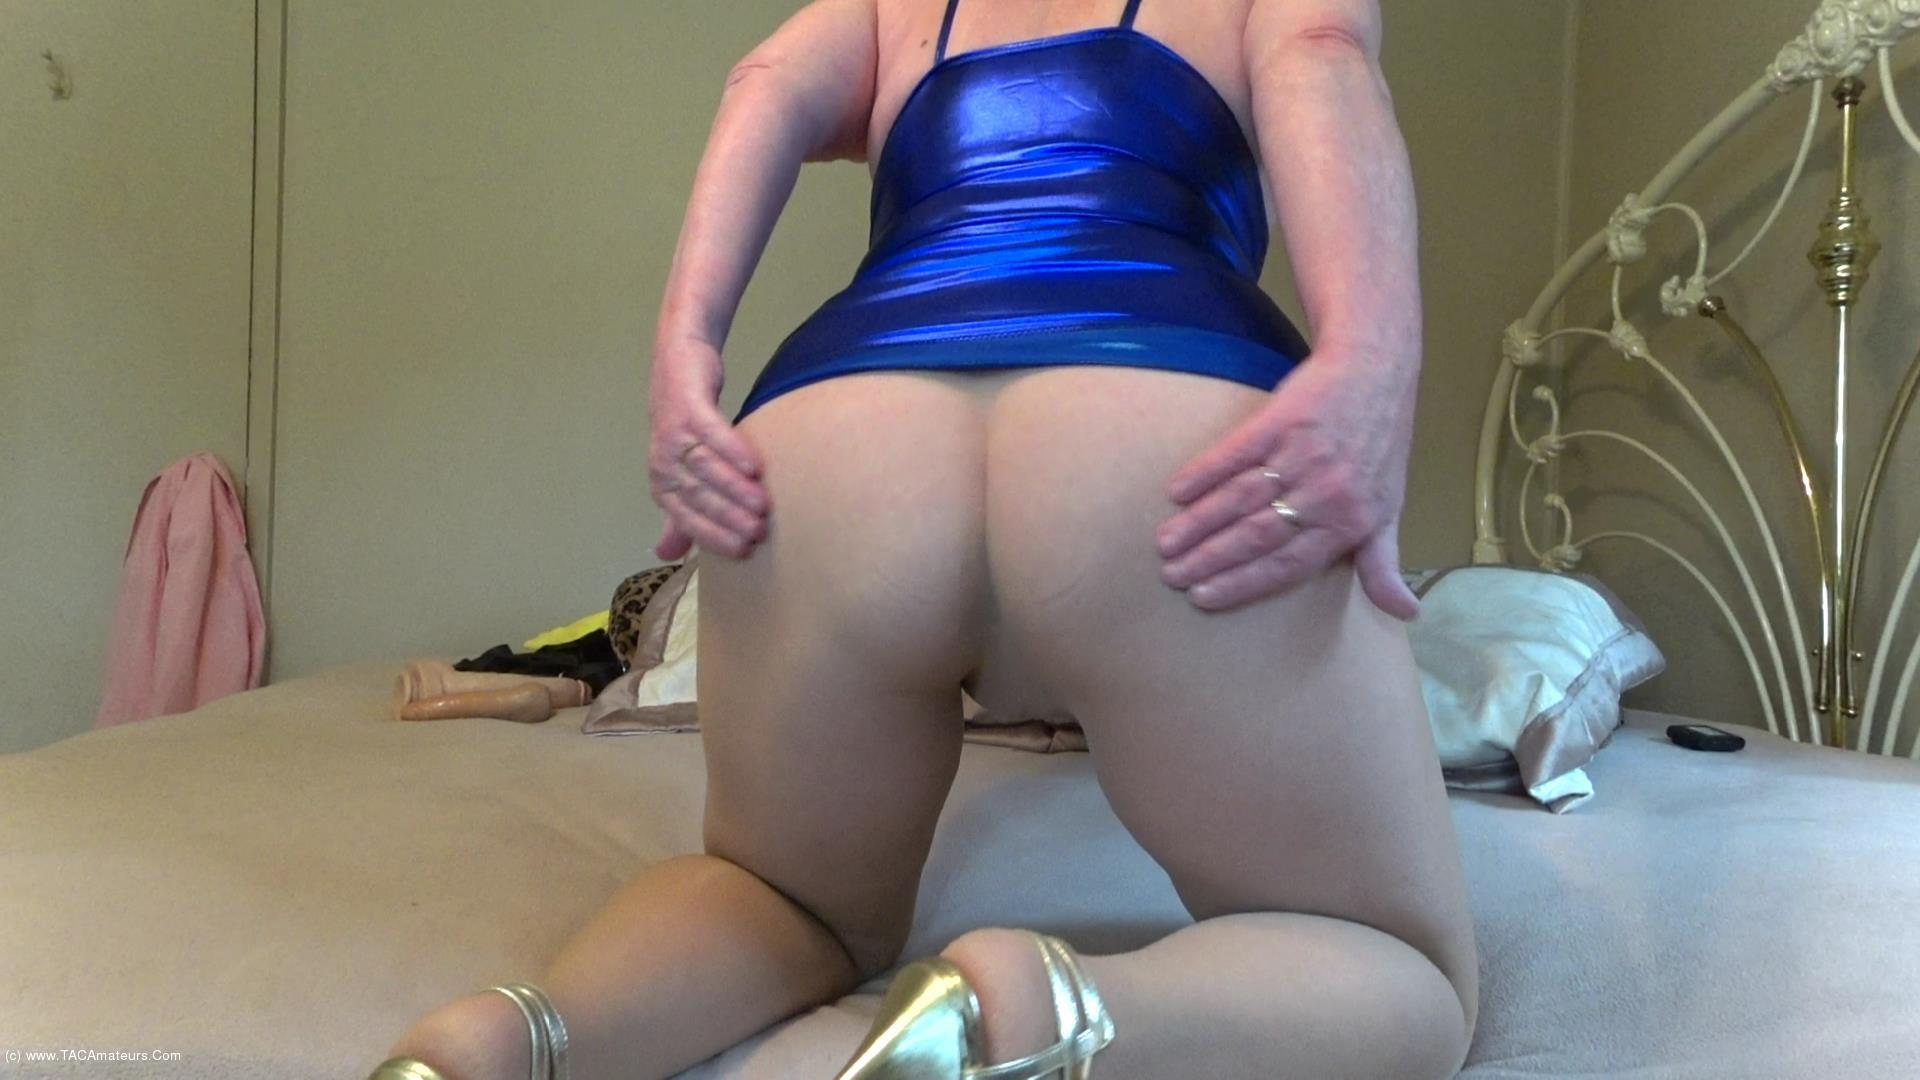 CougarBabeJolee - Sultry In PVC & Pantyhose Pt1 scene 3